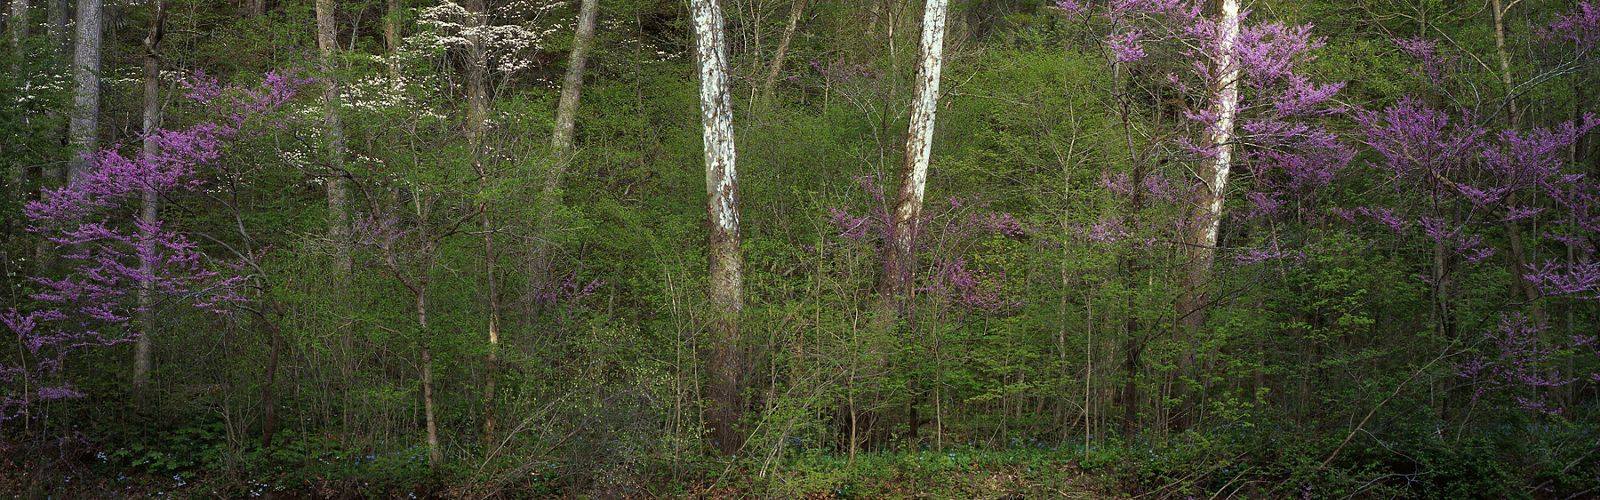 Redbuds, dogwoods and sycamore trees create a spring mosaic of color in Big Walnut Nature Preserve in Putnam County.